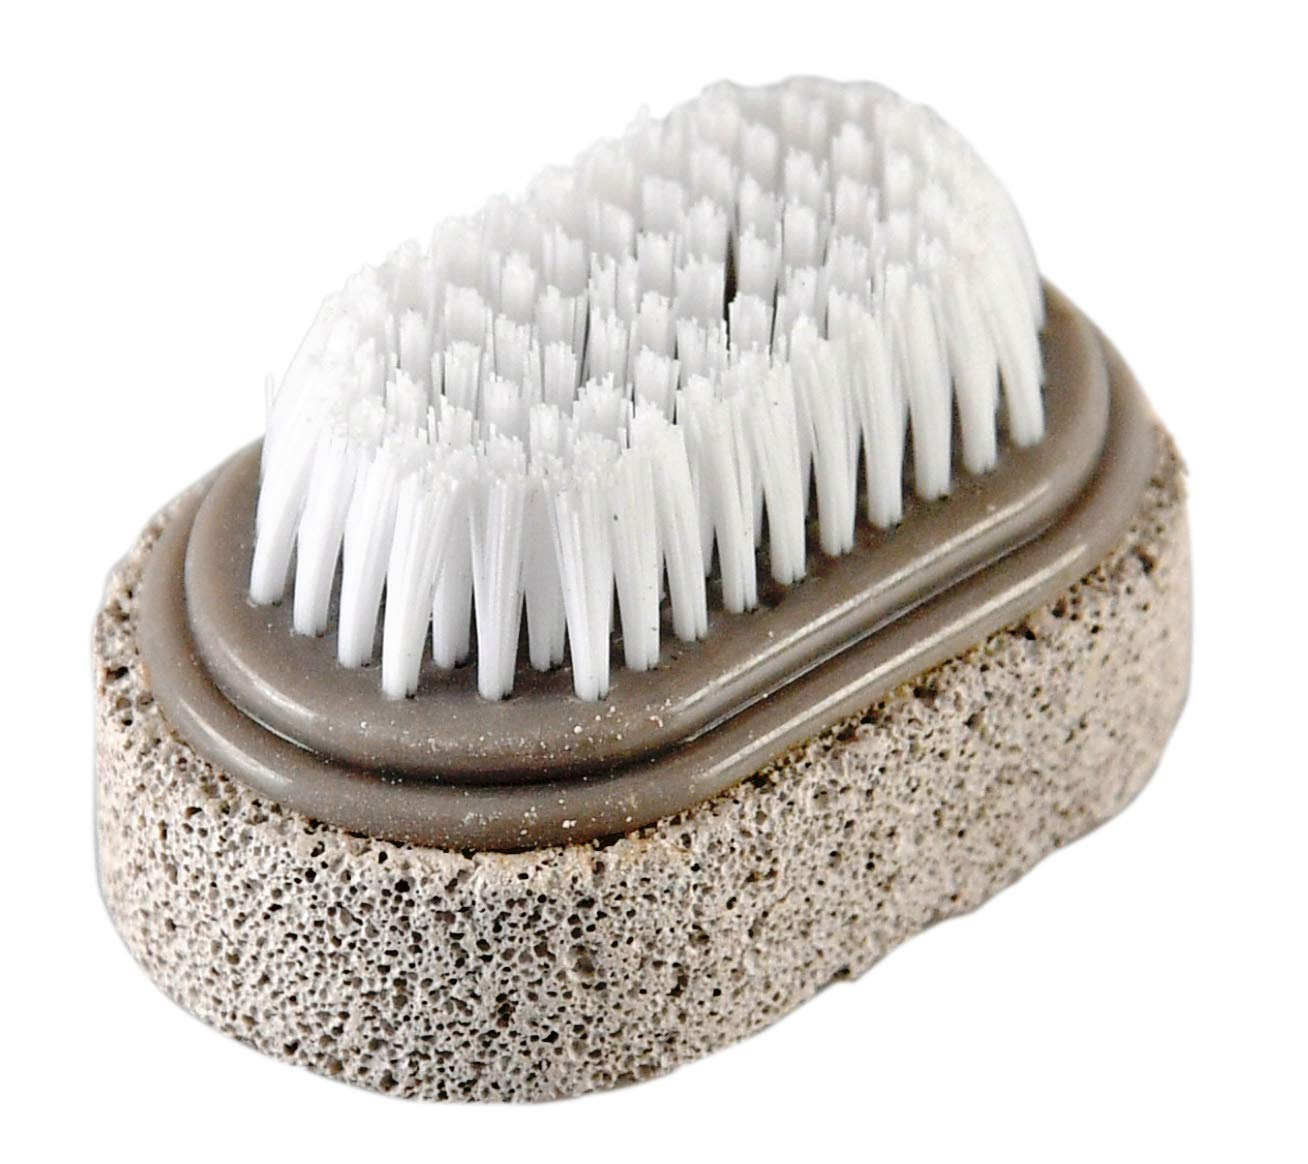 "HOME-X 2-in-1 Pumice Stone and Brush for Feet, Foot File, Dead Skin Callus Remover, Pedicure Tool, Bathroom Accessories-2 ¾"" L x 1 ¾"" W"